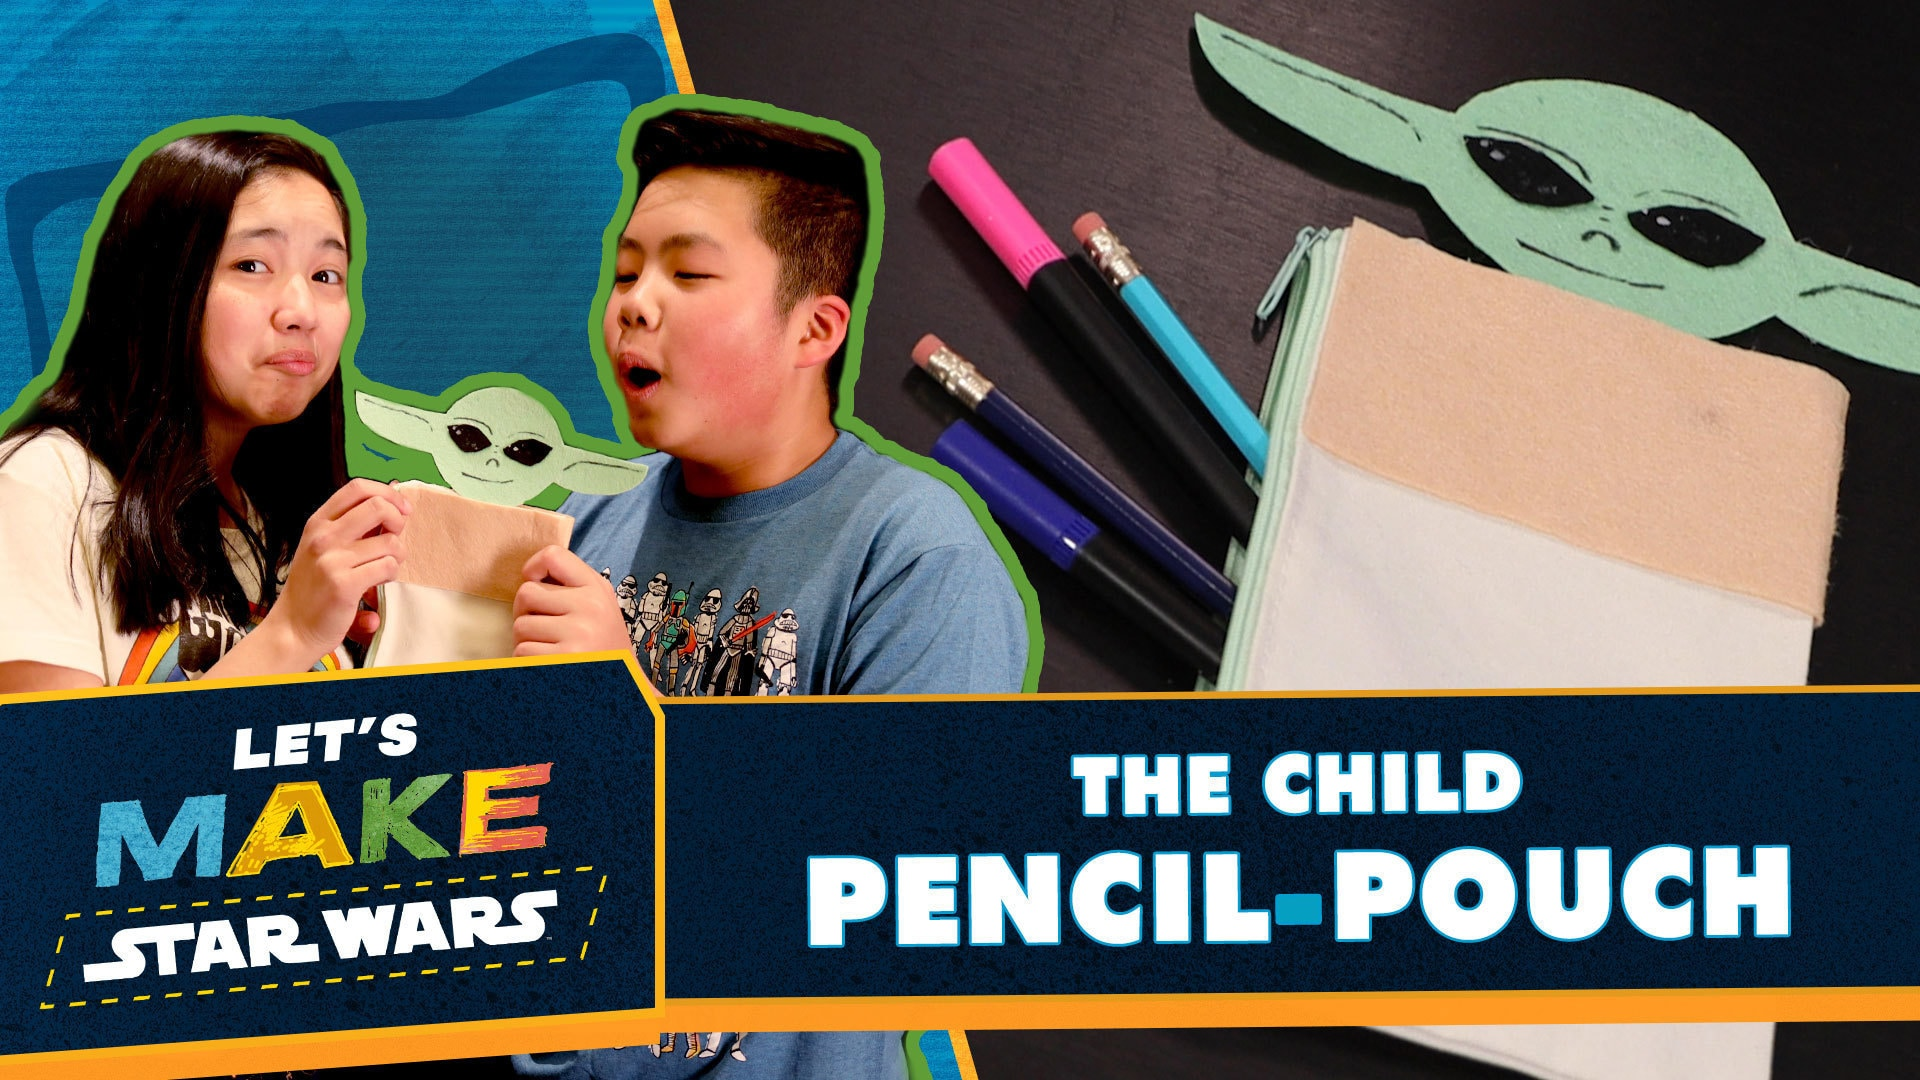 Let's Make Star Wars - How to Make The Child Pencil Pouch